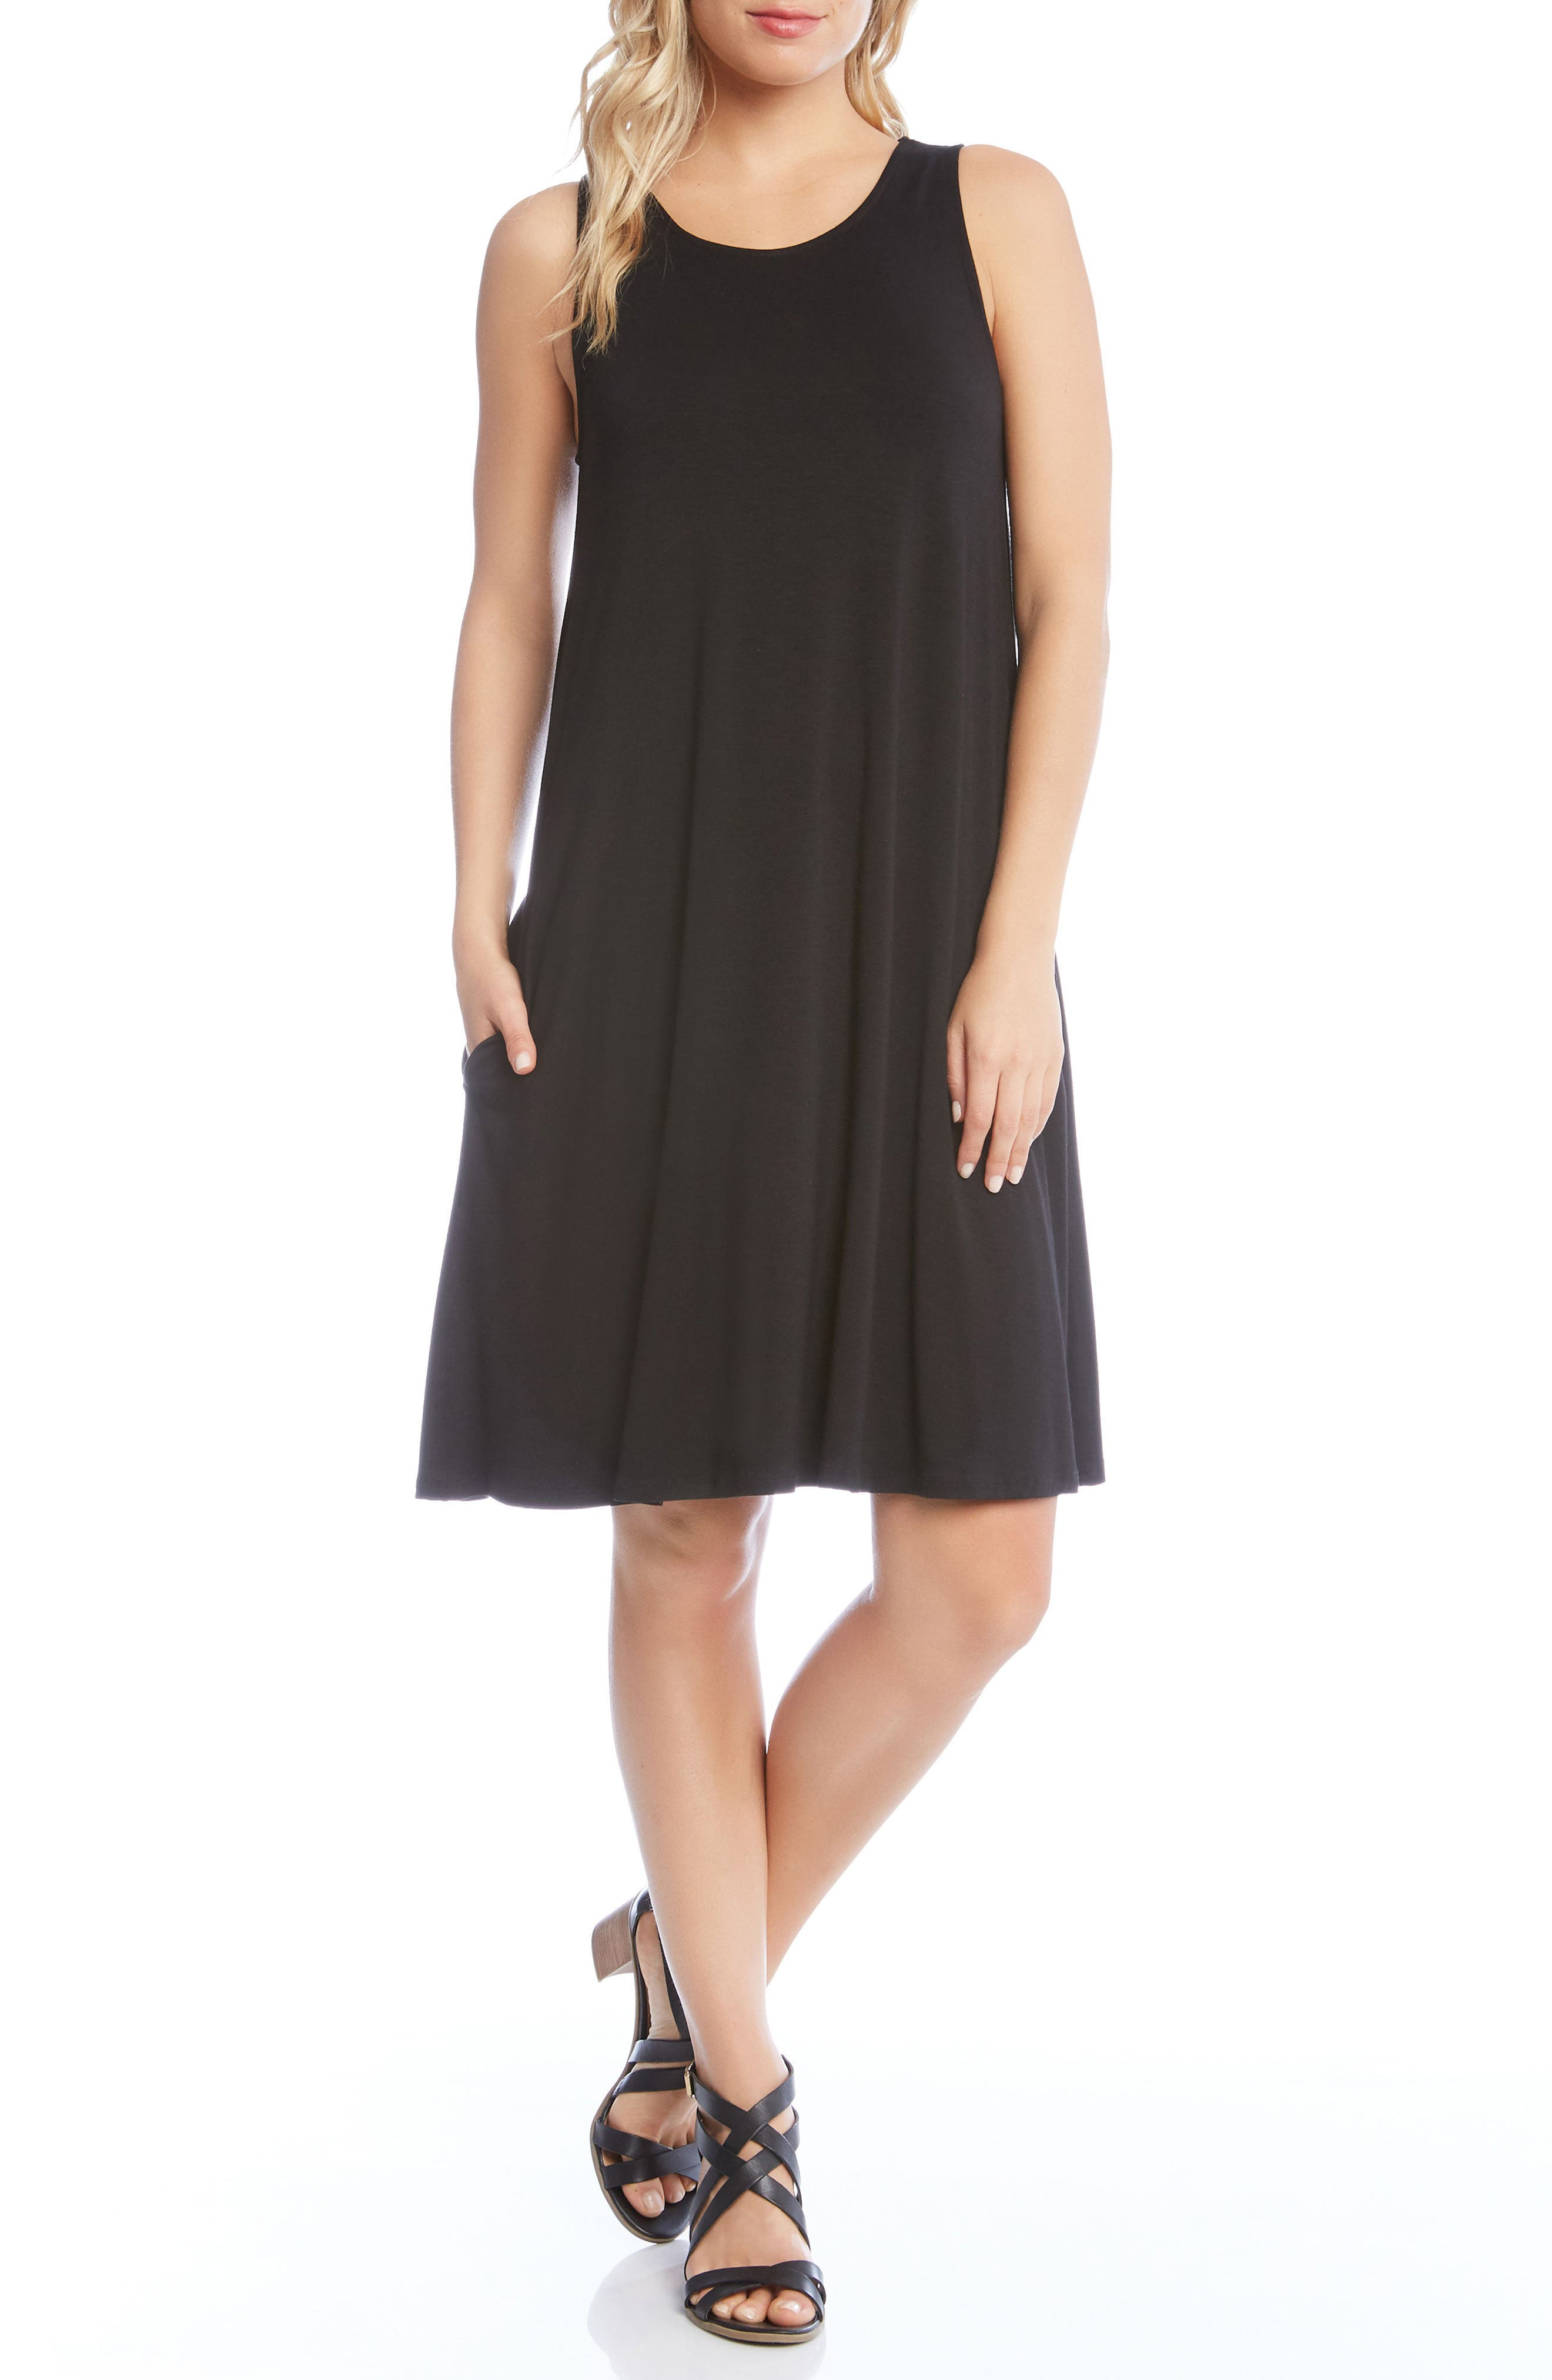 Chloe Swing Jersey Dress,                         Main,                         color, Black